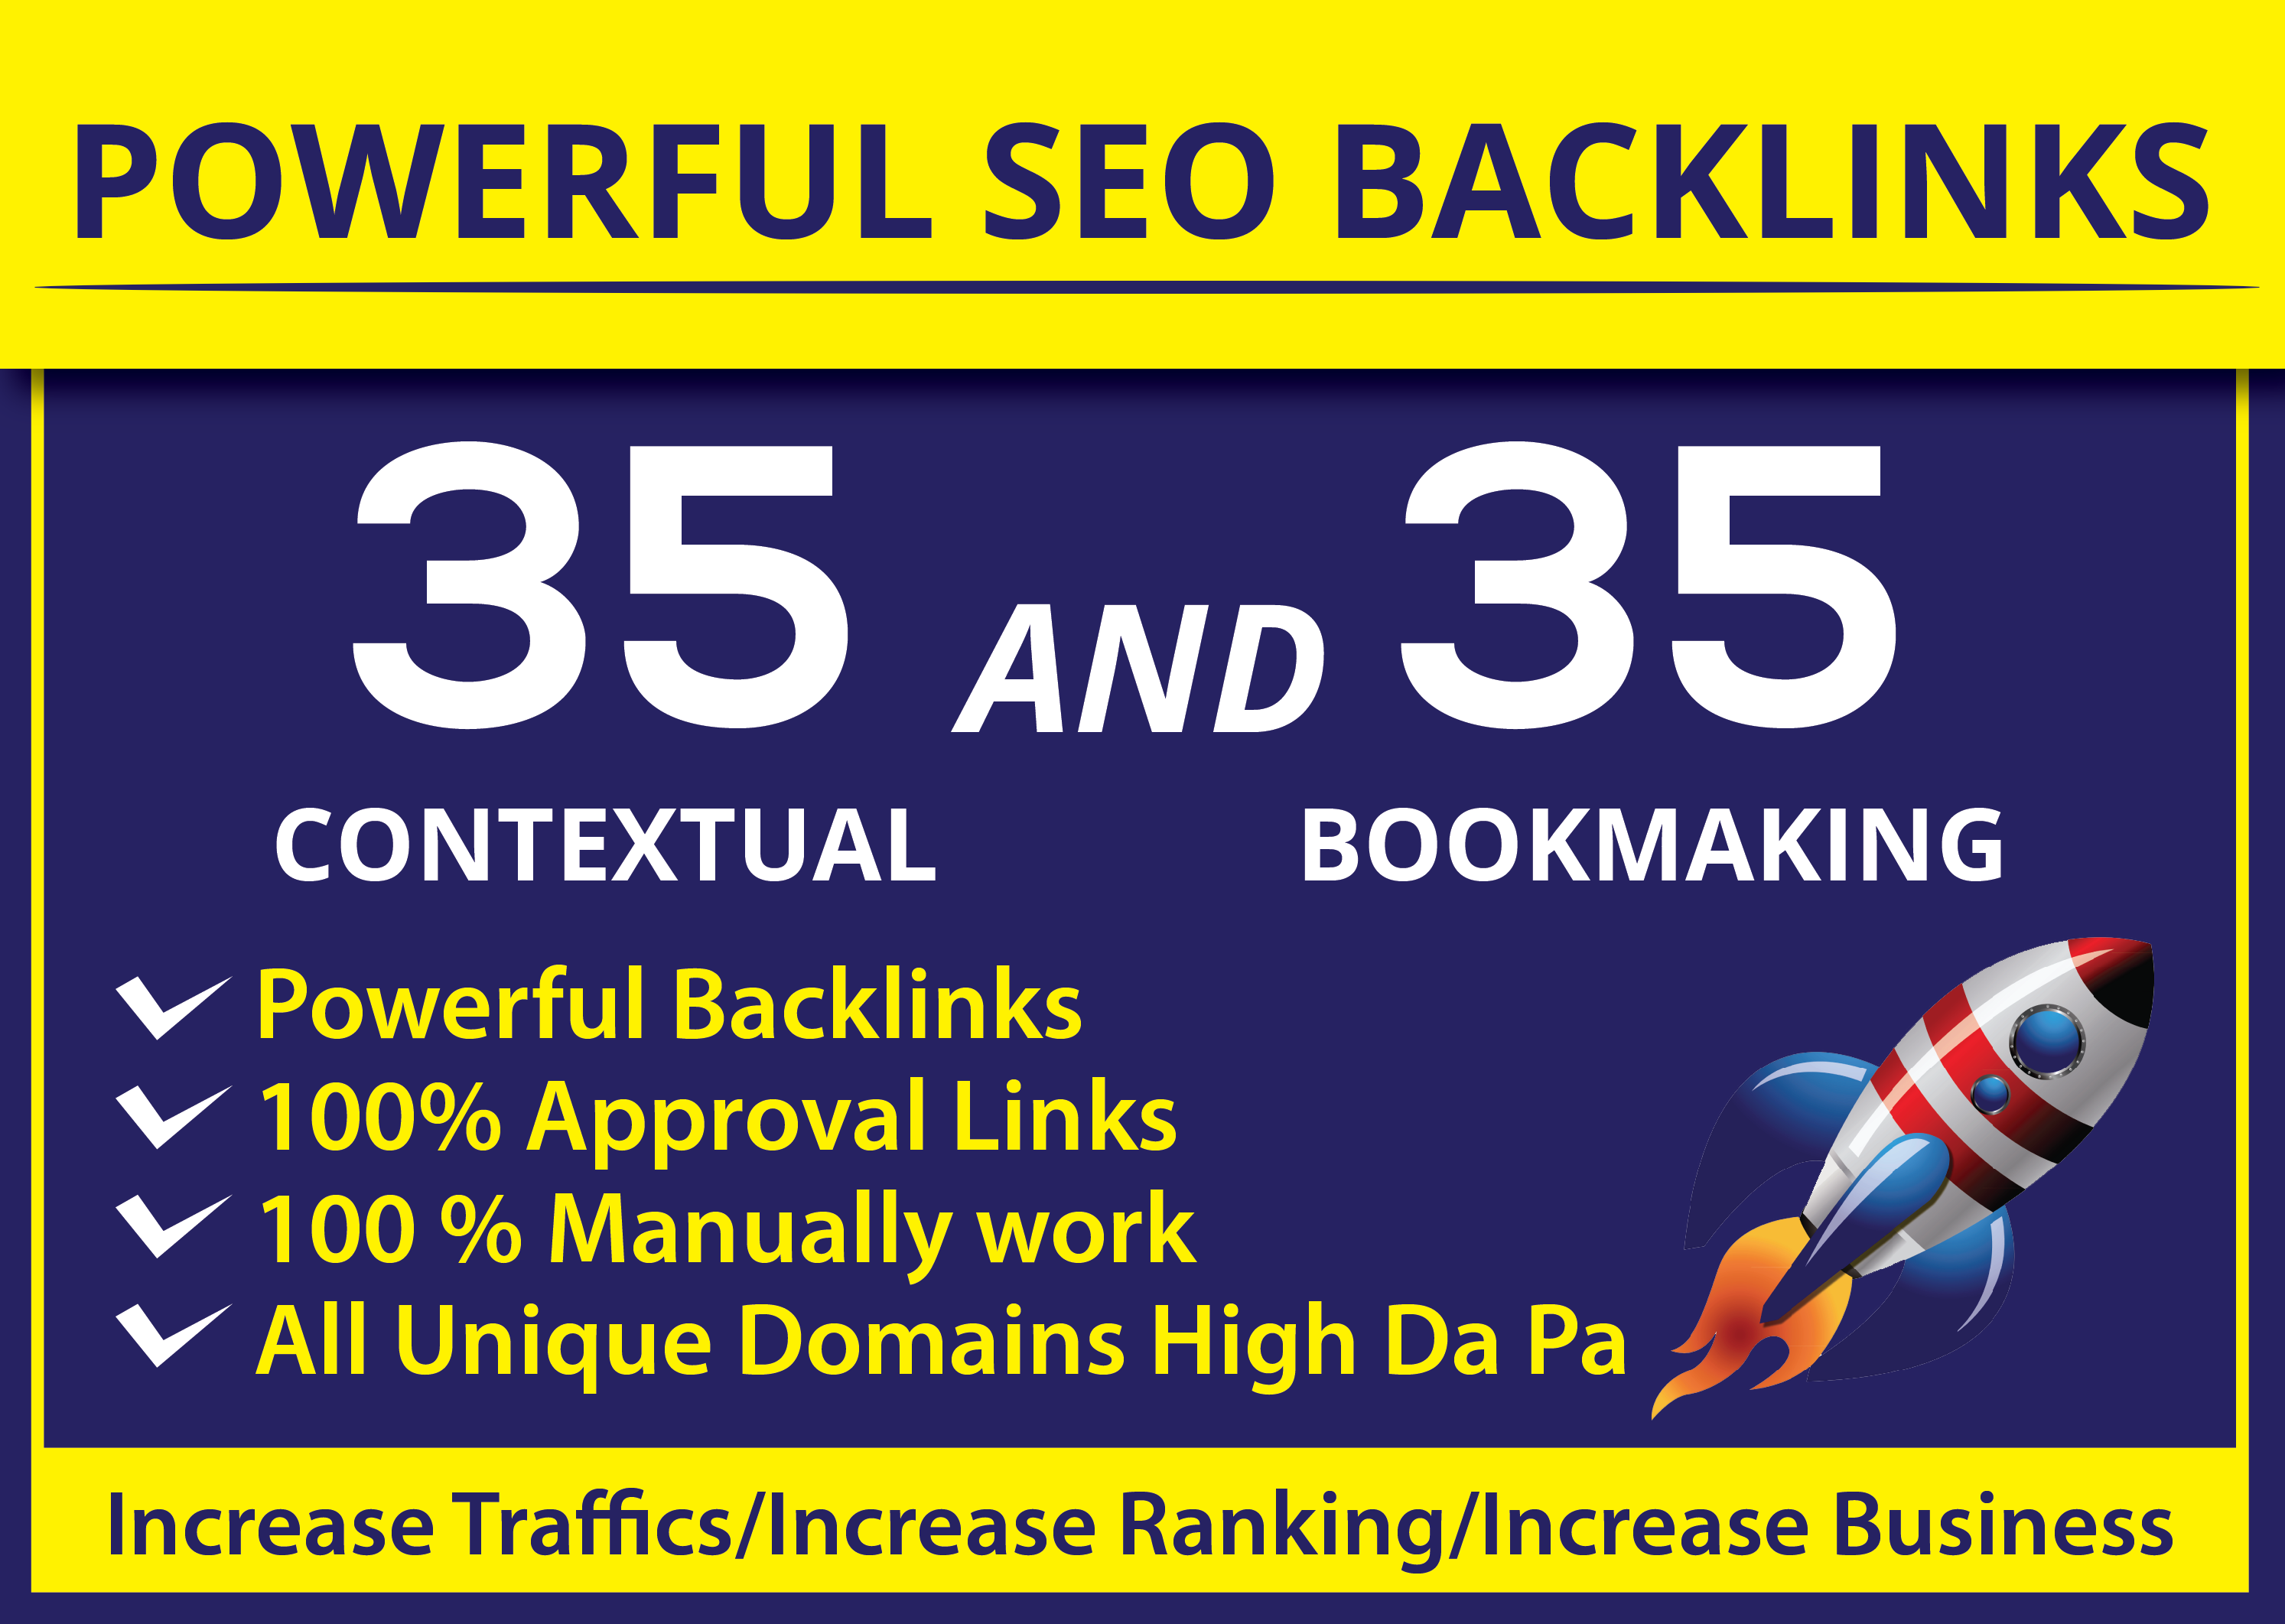 I Will Build Seo Backlinks 35 Contextual And 35 Bookmaking High Da Pa